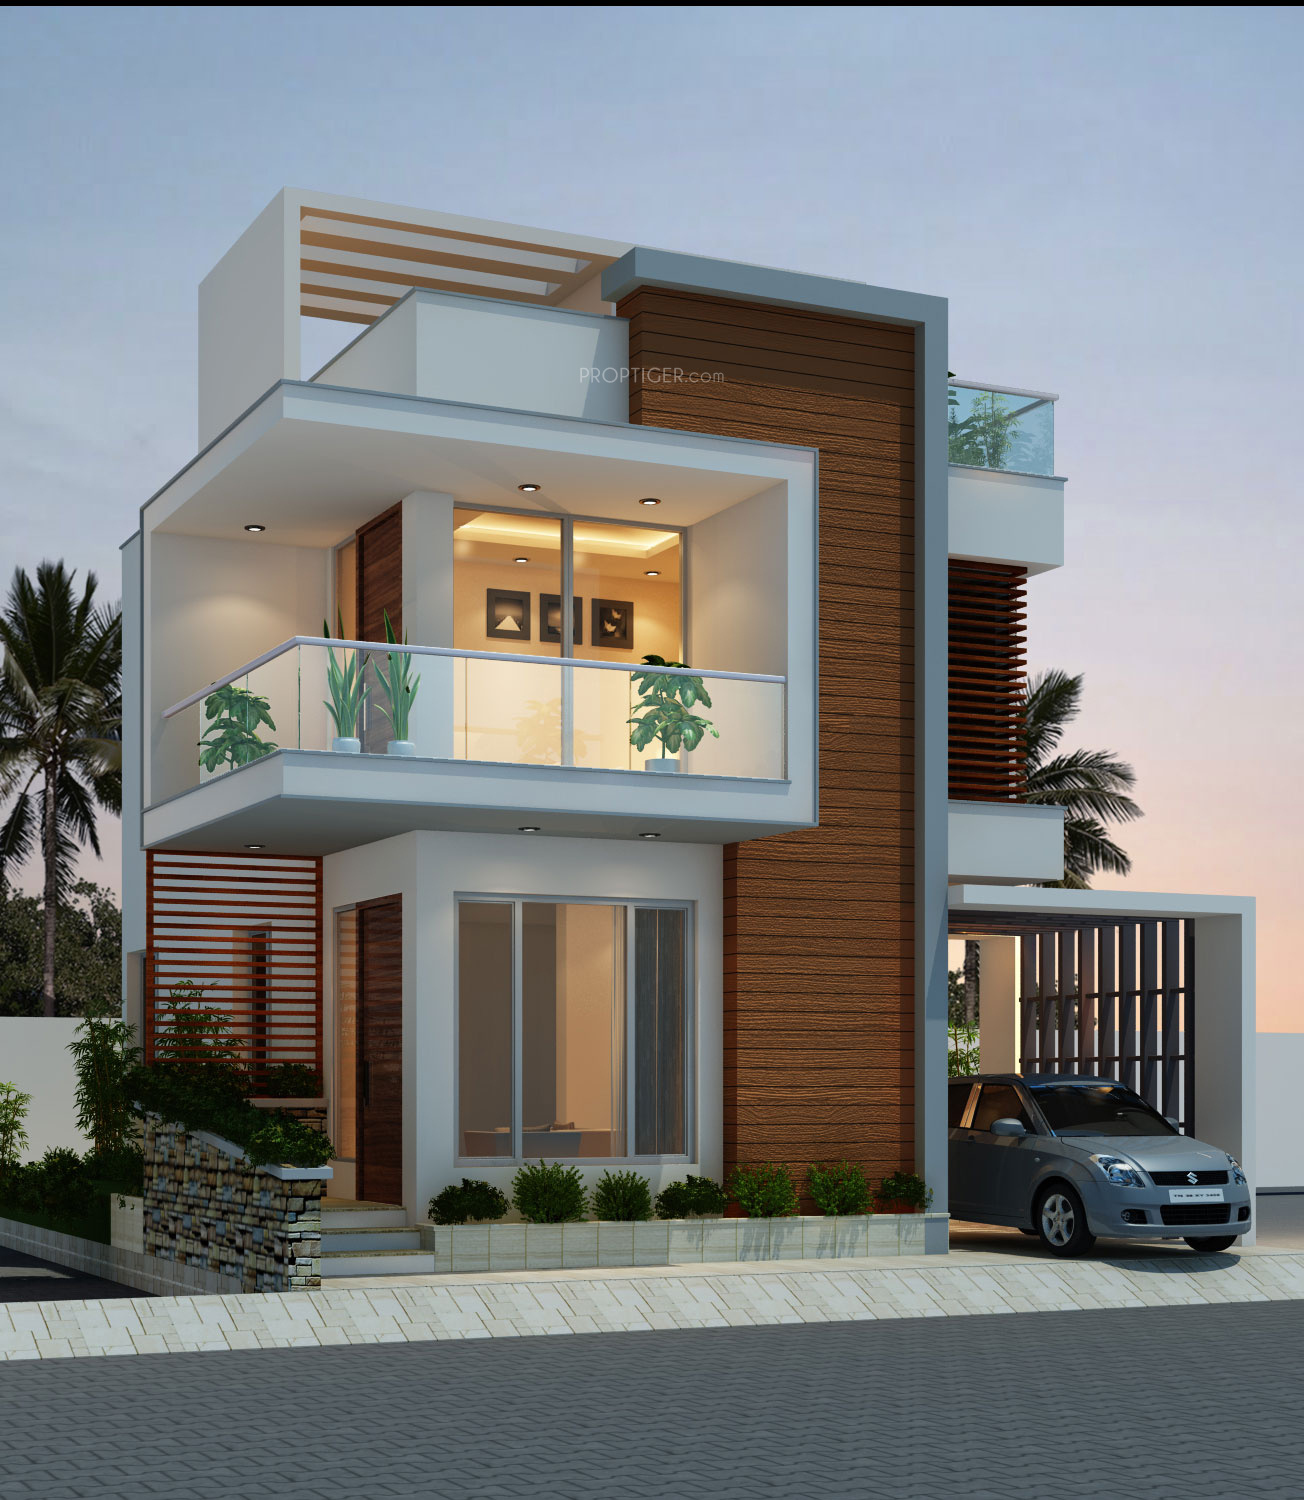 Headway fortune residency villa in perungalathur chennai for Front elevation modern house